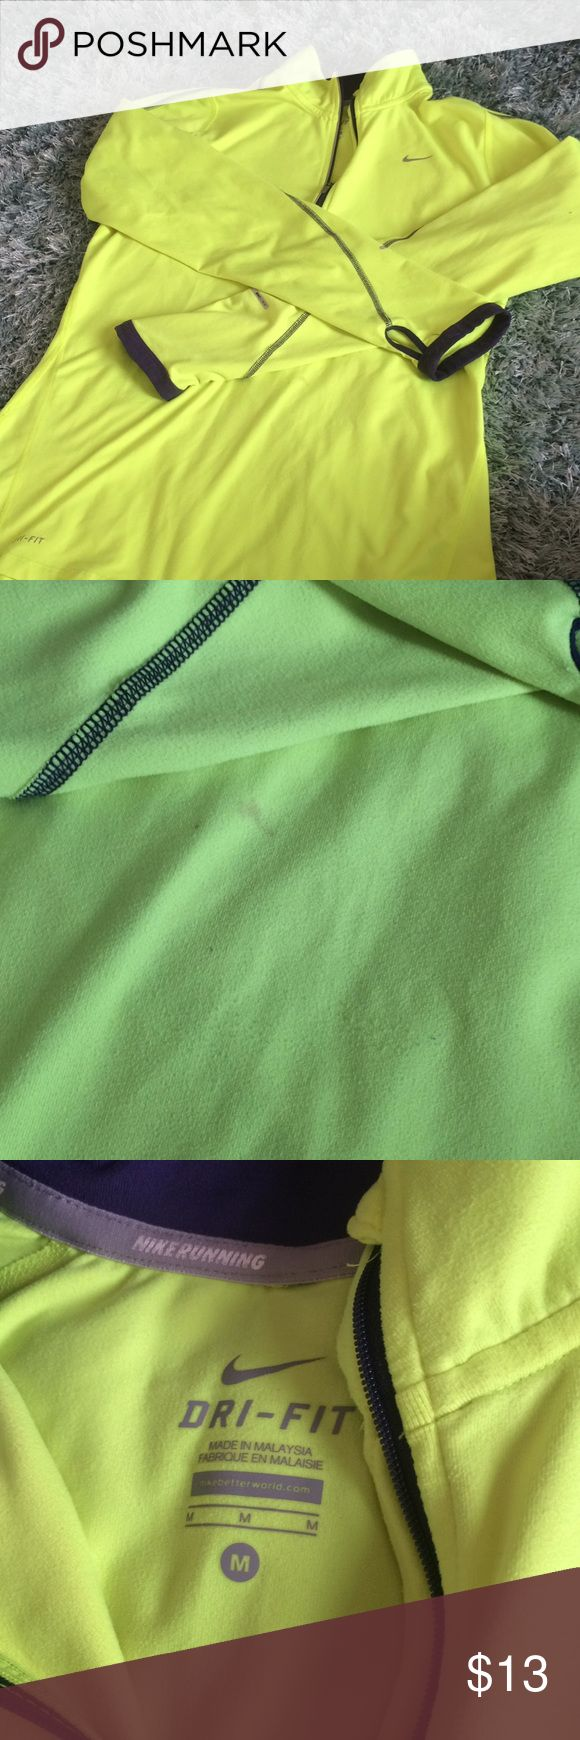 Nike Neon Half-Zip Nike bright yellow half-zip. Perfect for winter running. Small stain in front reflected in price. Nike Tops